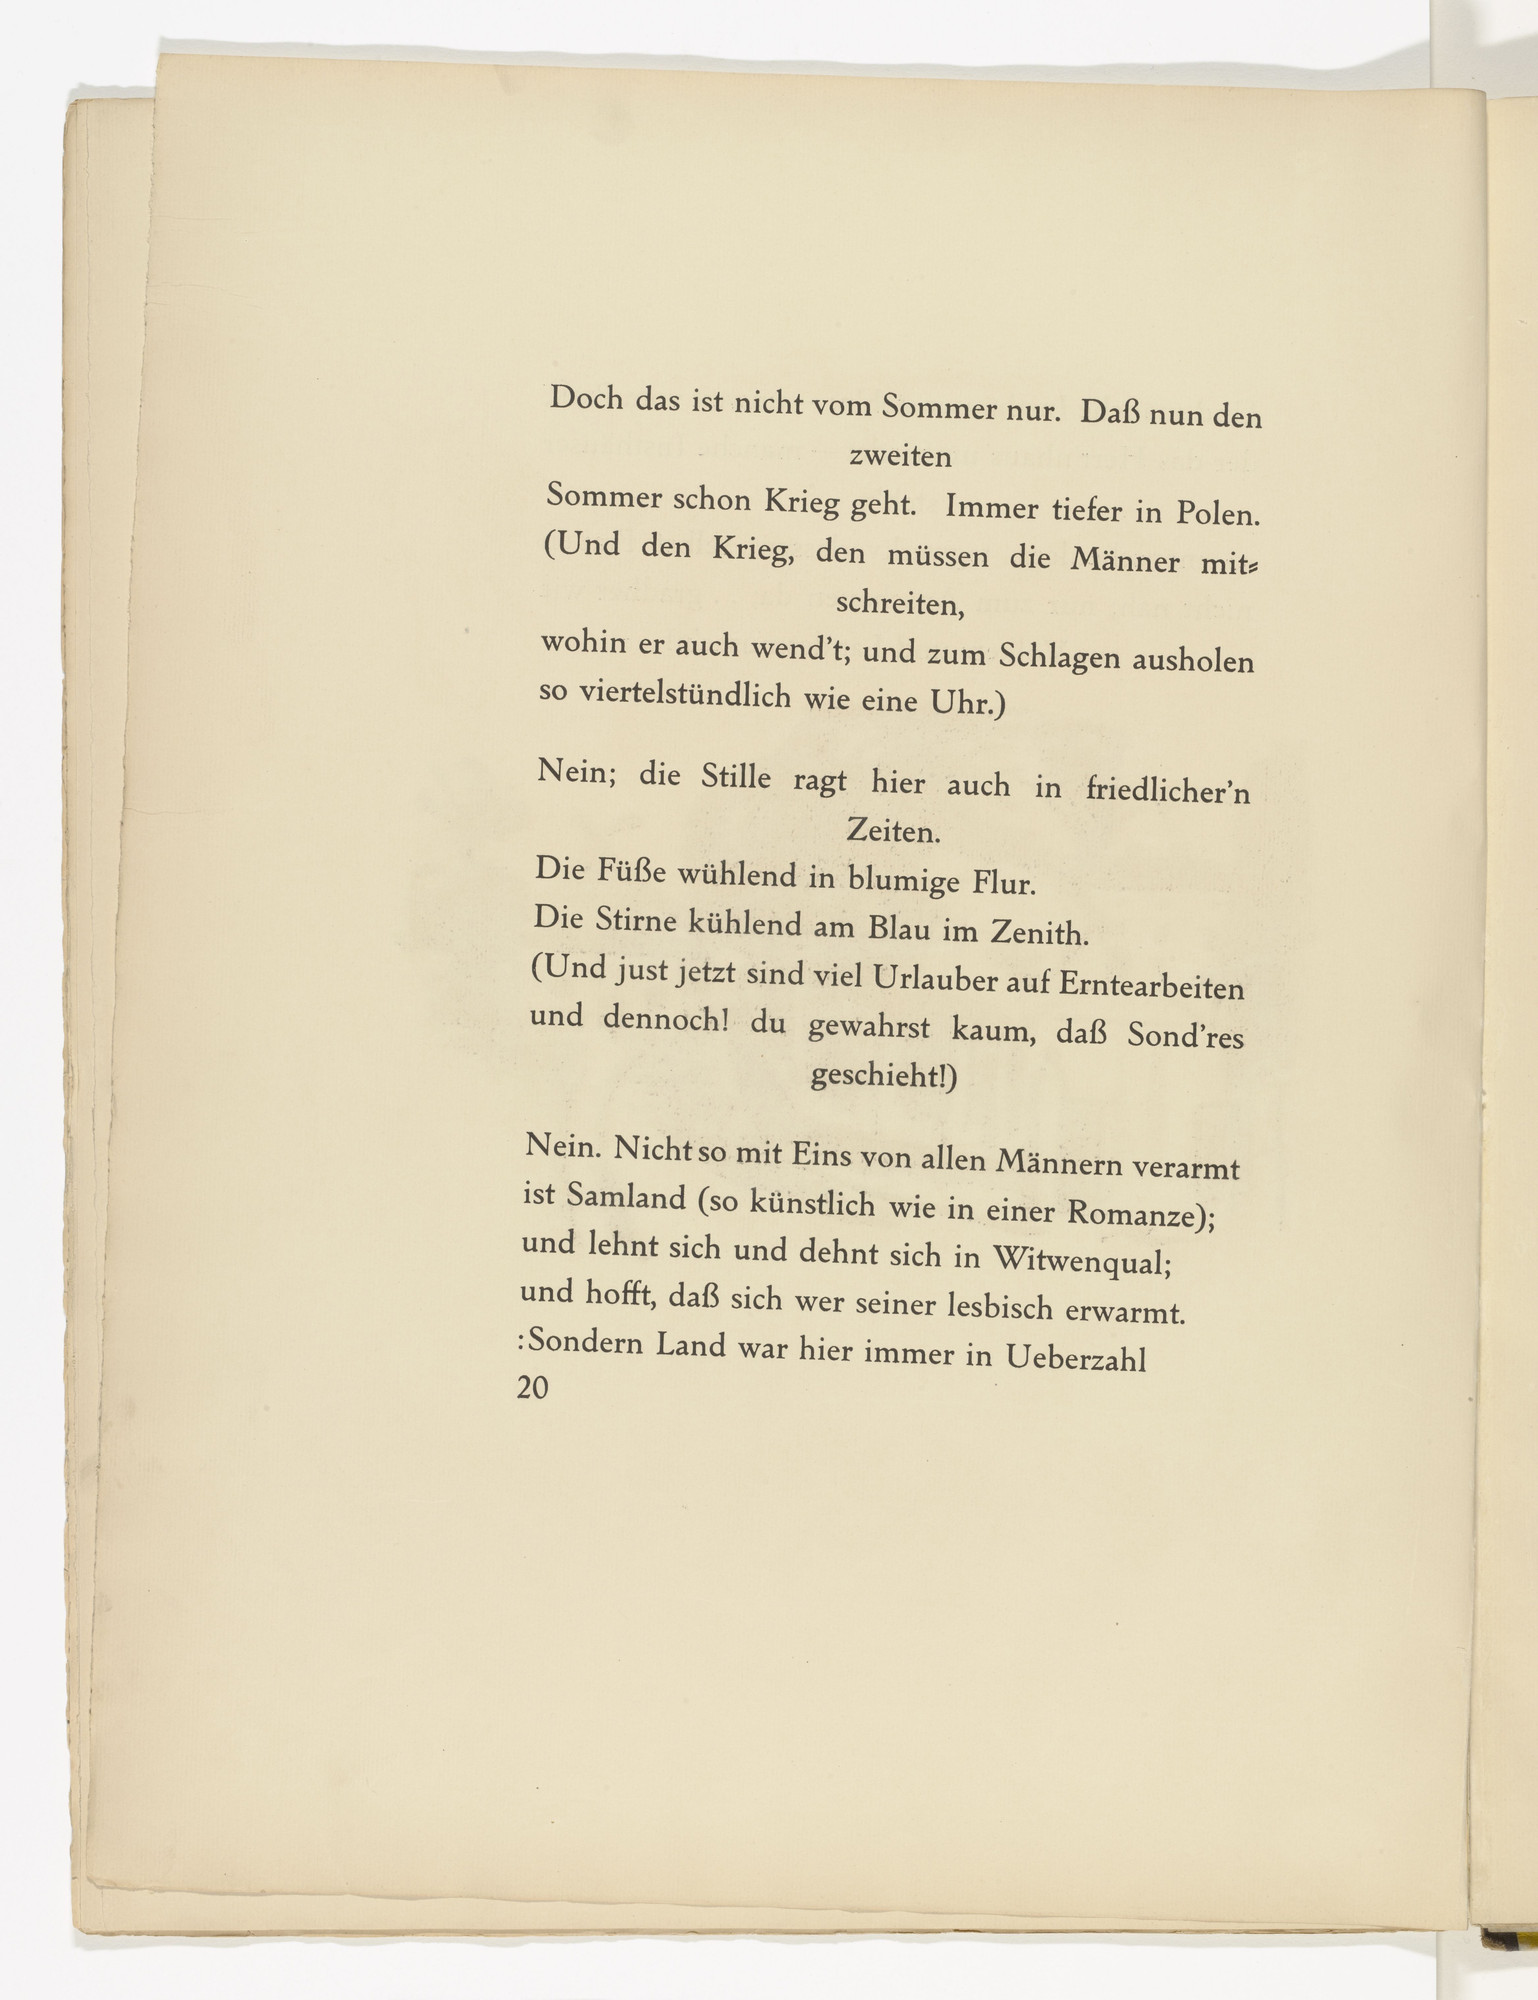 Max Pechstein. Untitled (plate, facing page 20) from Die Samländische Ode (The Samland Ode). 1918 (executed 1917)